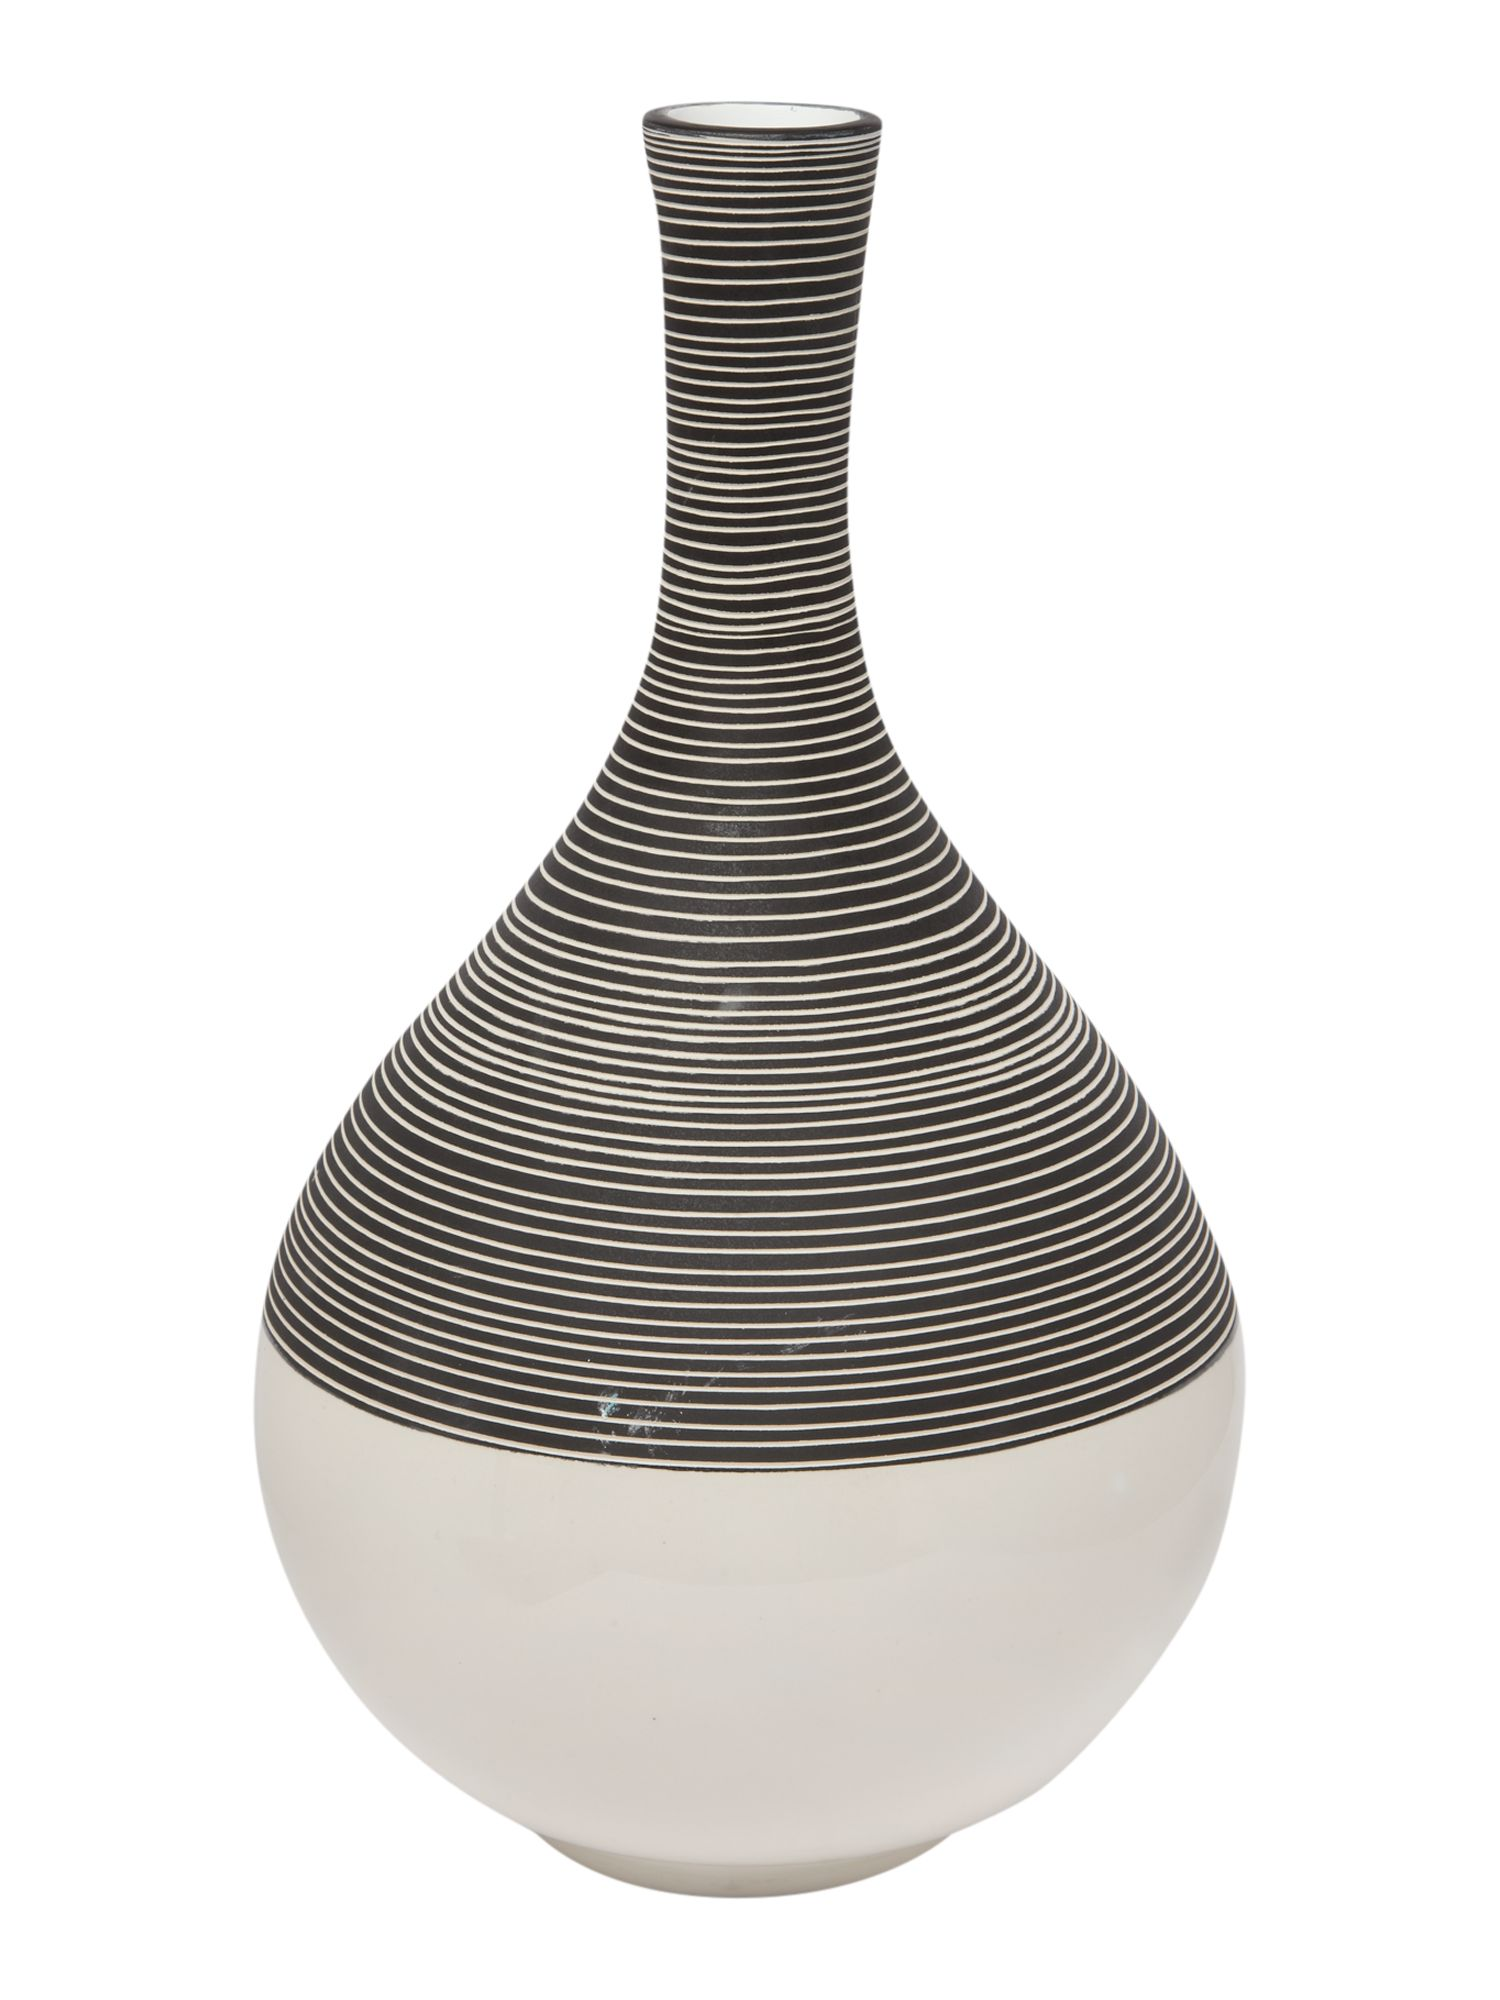 Ceramic vase with ribbed detail